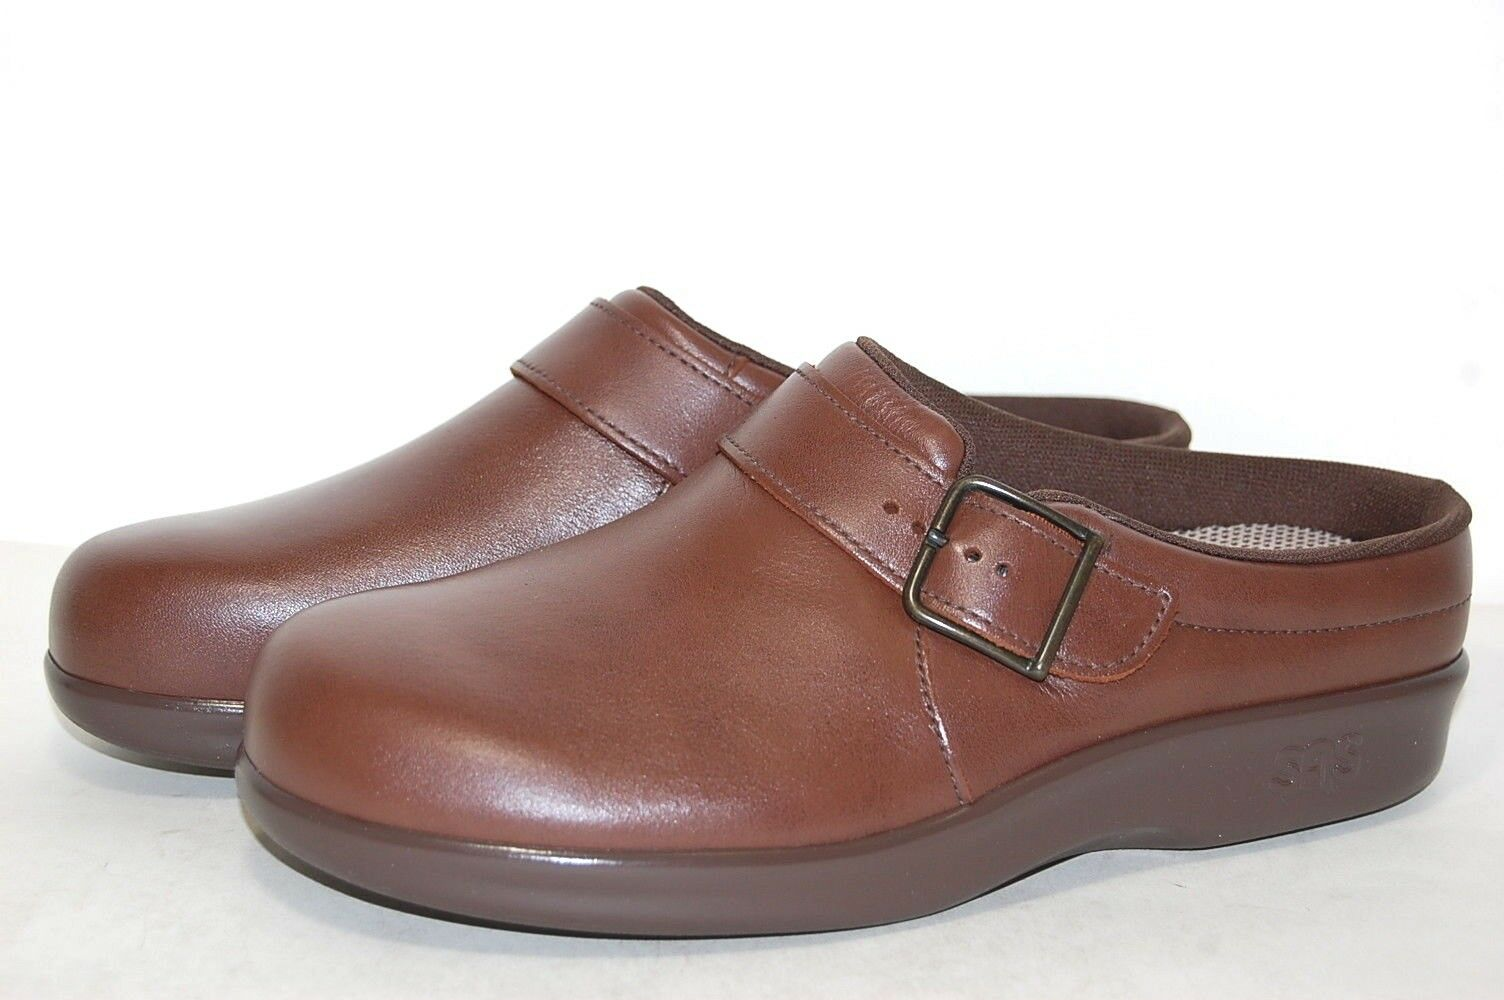 Original Original Original SAS Clog 1900-182 W Wide Made in U.S.A Leather femmes 4851ee